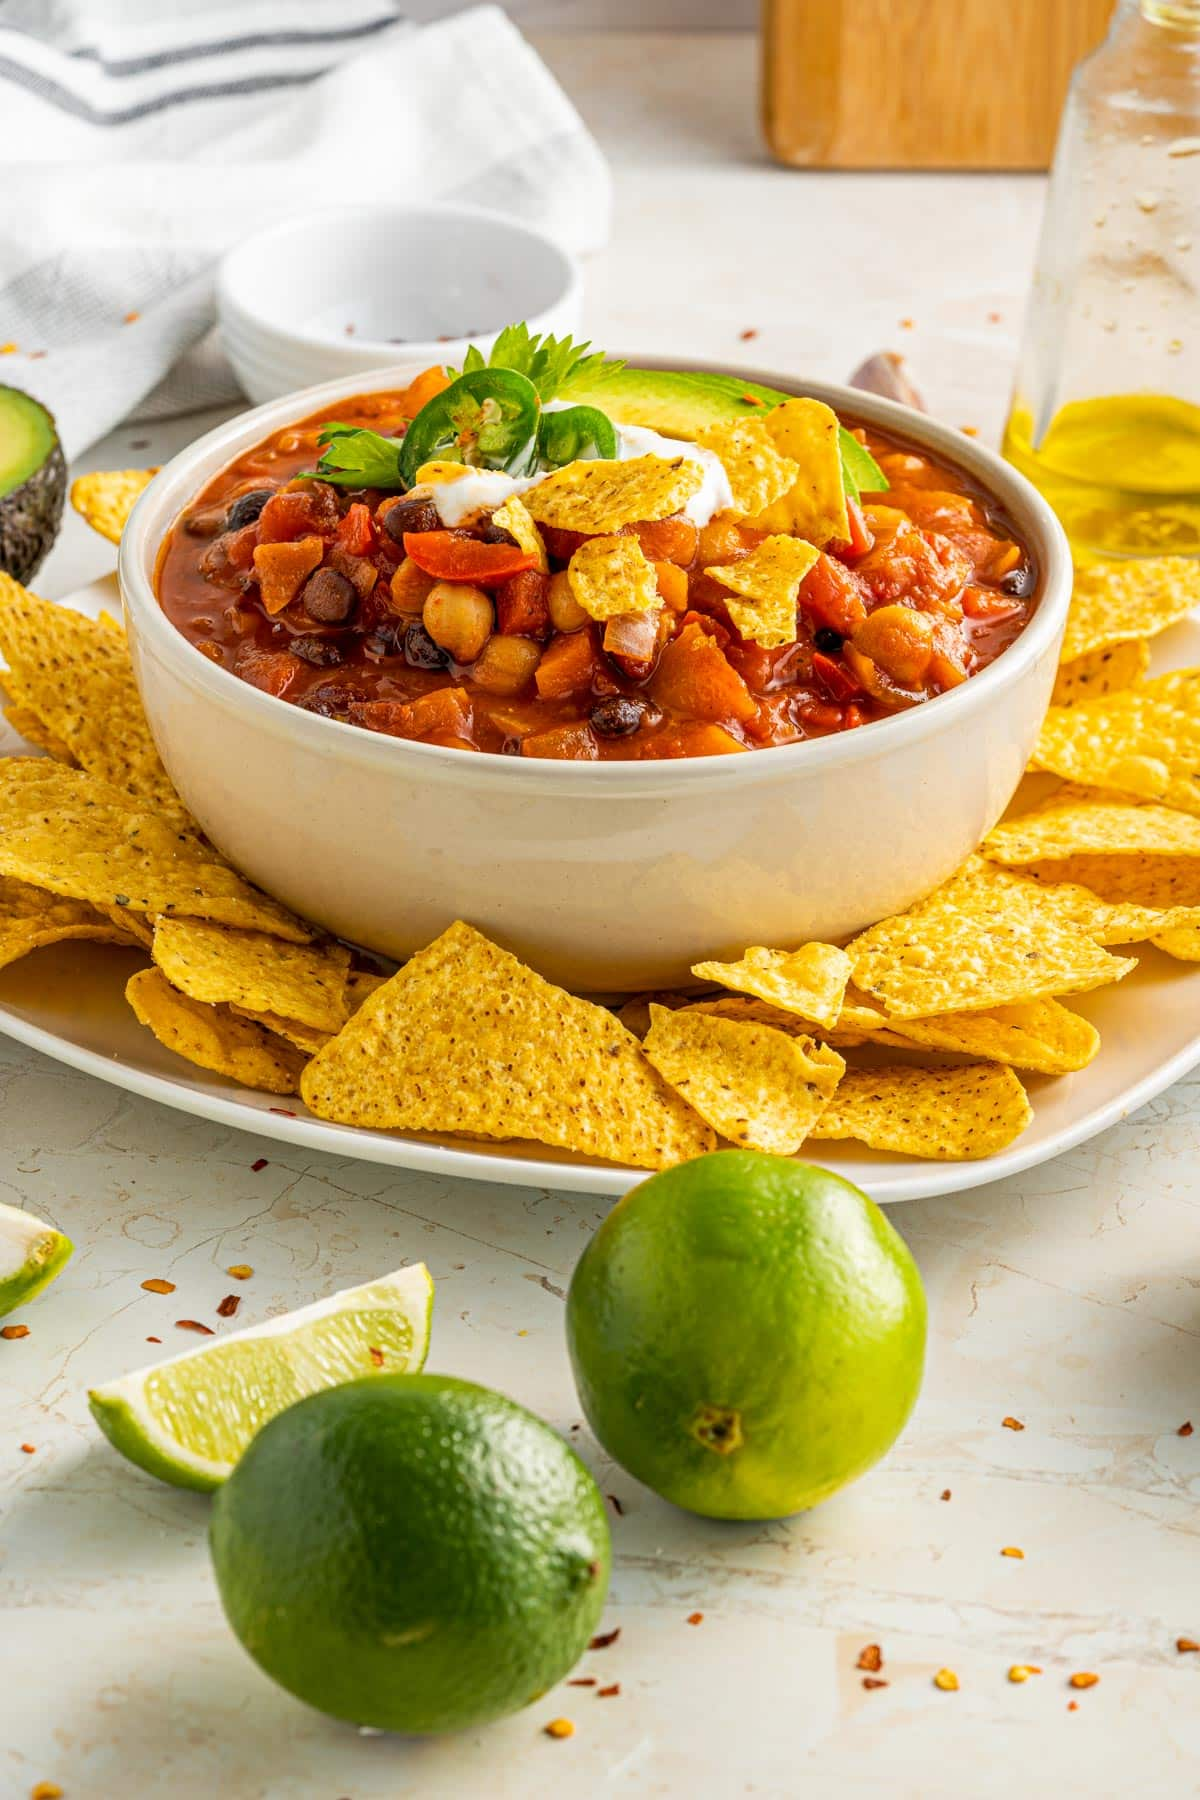 bowl of chili with limes slices and golden tortilla chips